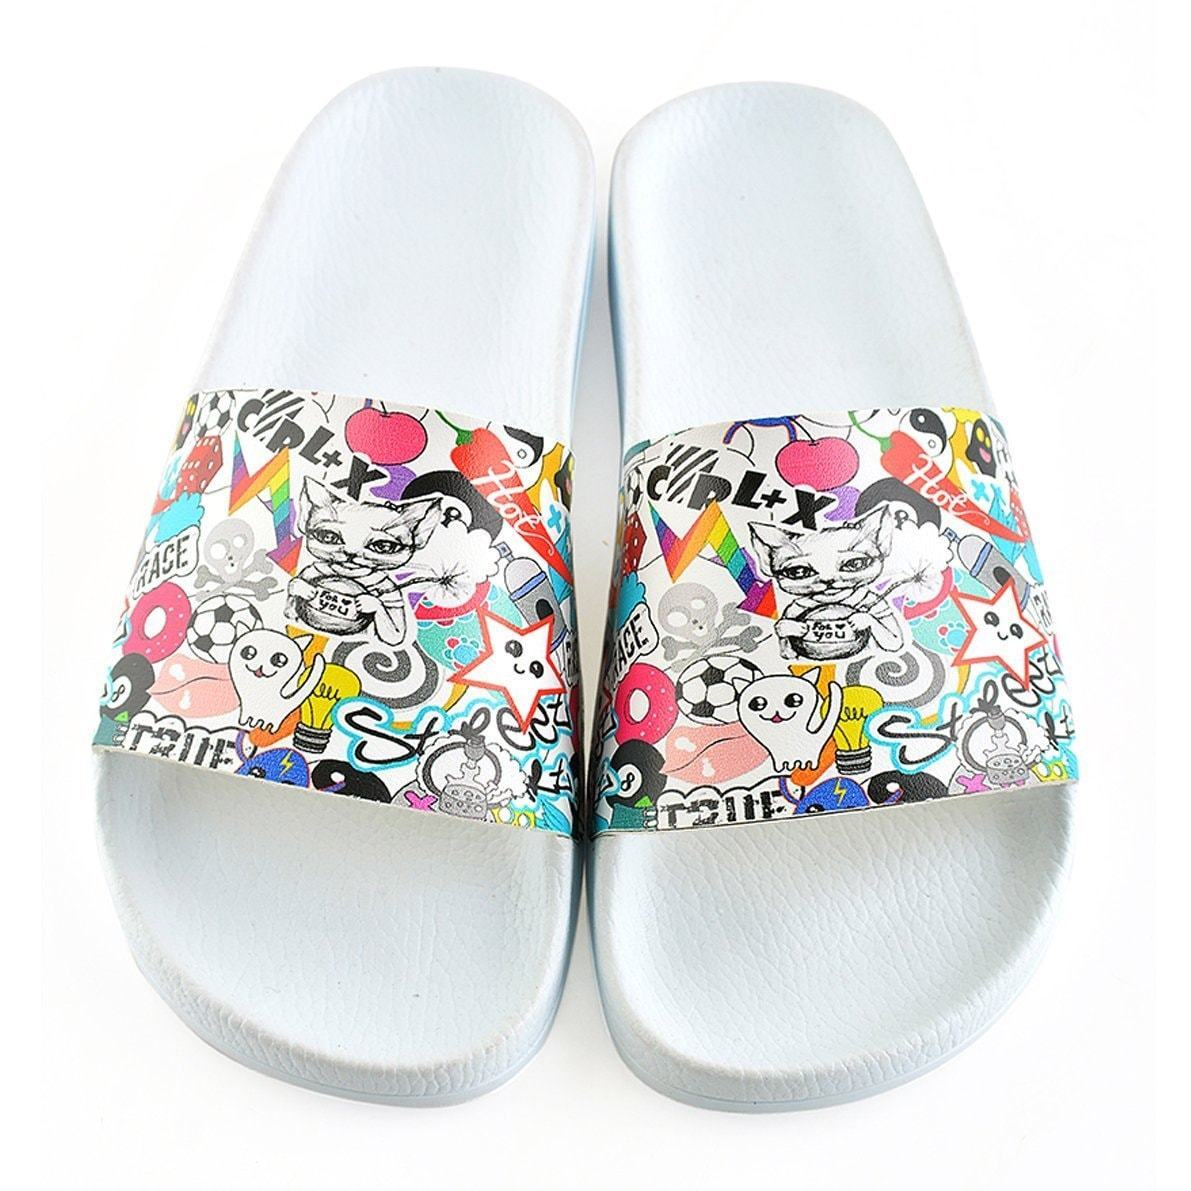 White Sticker Slide Sandal CAP103